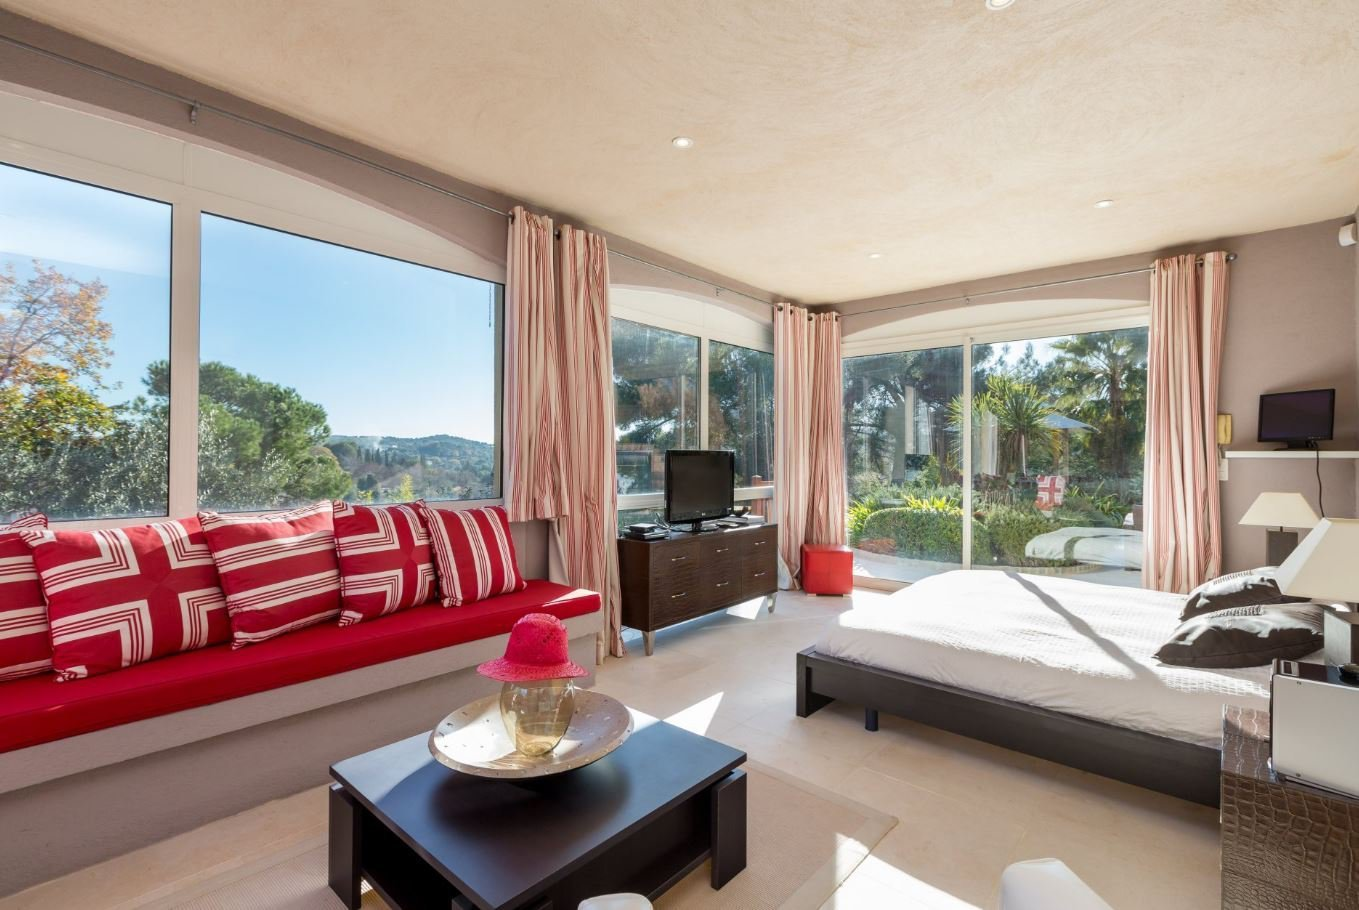 Recent contemporary villa with stunning views of the old village of Mougins.